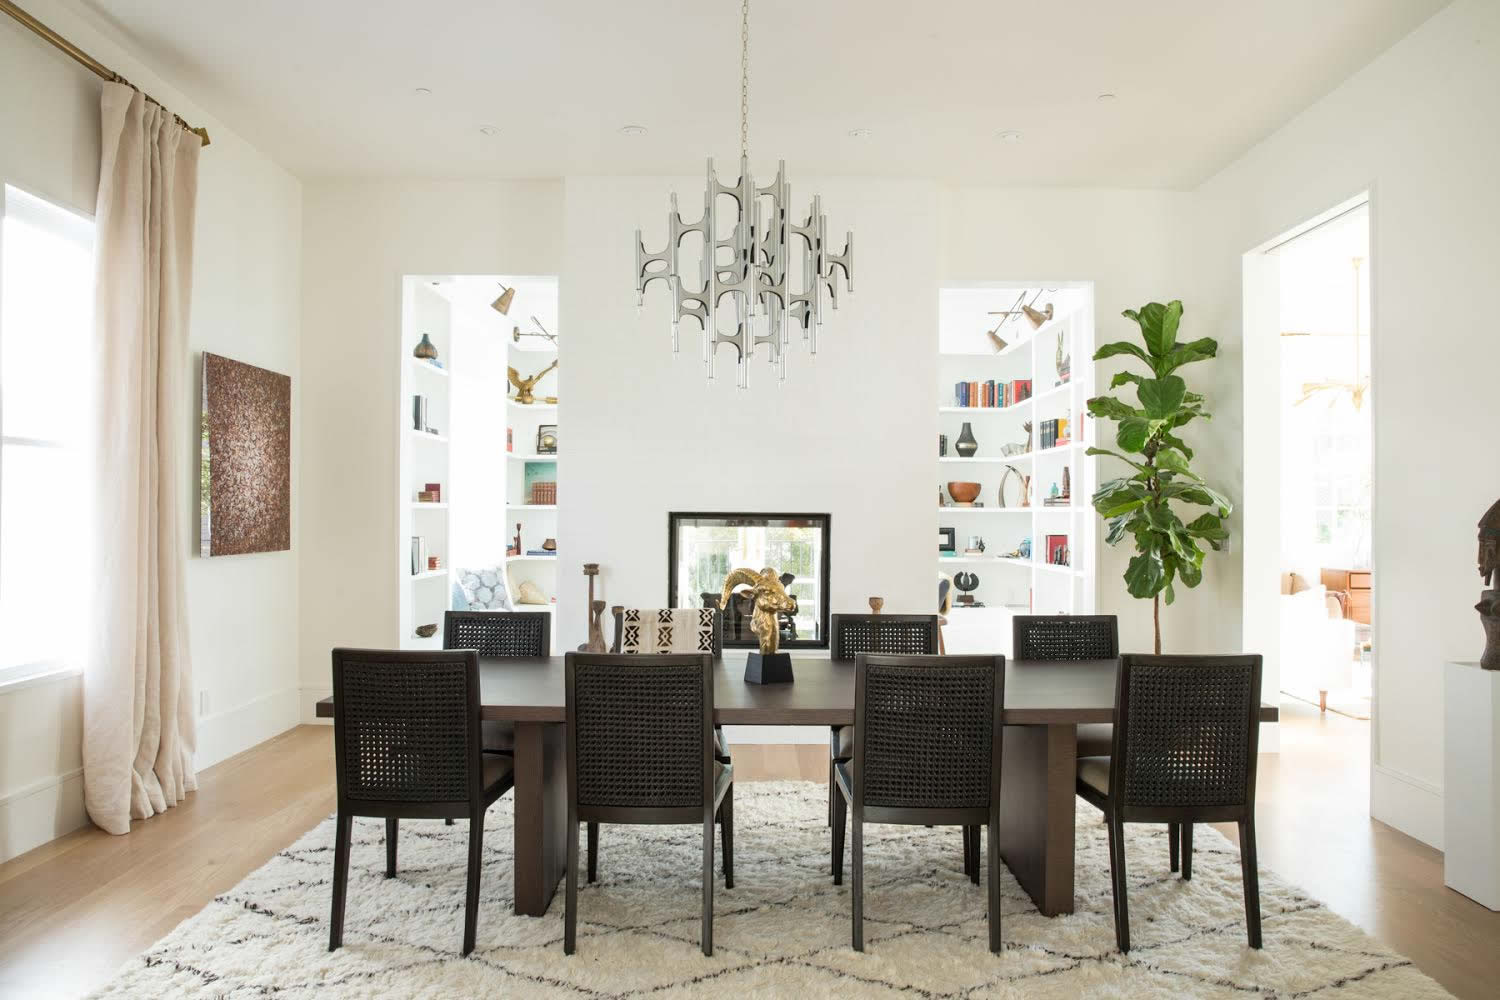 Vintage Dining Room with Black Chairs